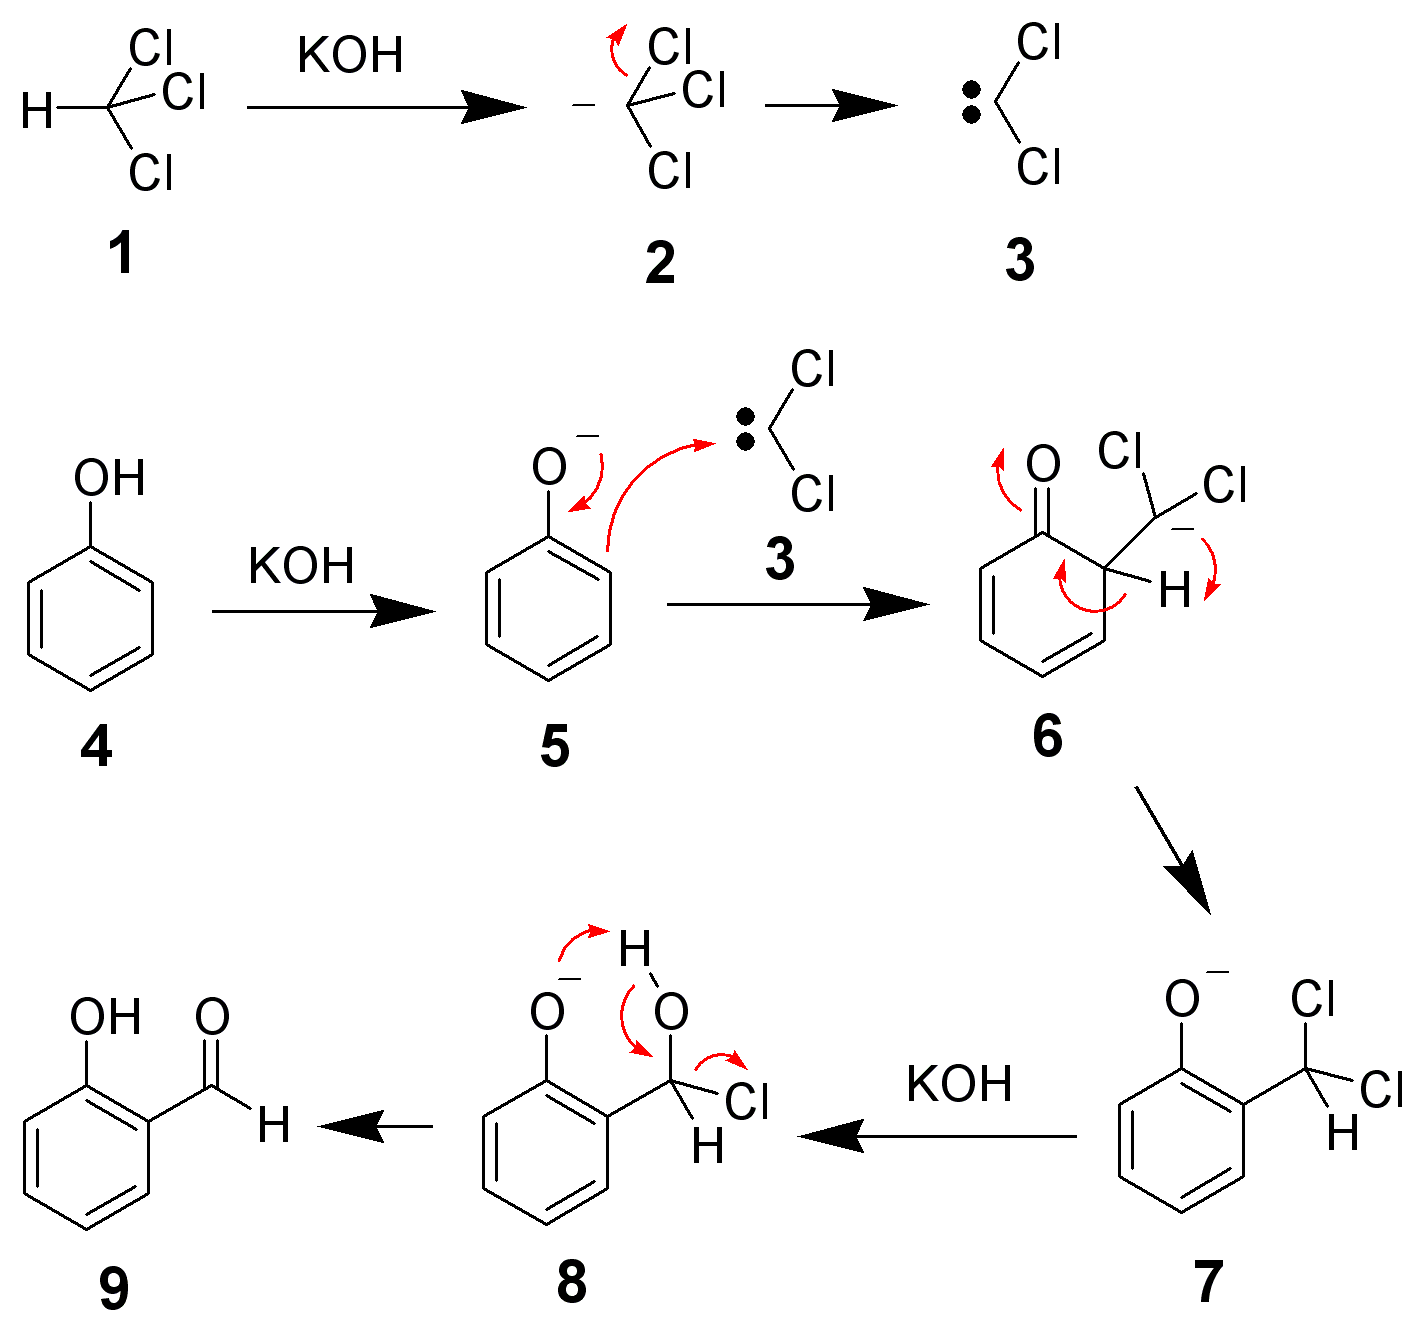 File:Reimer-Tiemann Reaction Mechanism.png - Wikipedia, the free ...